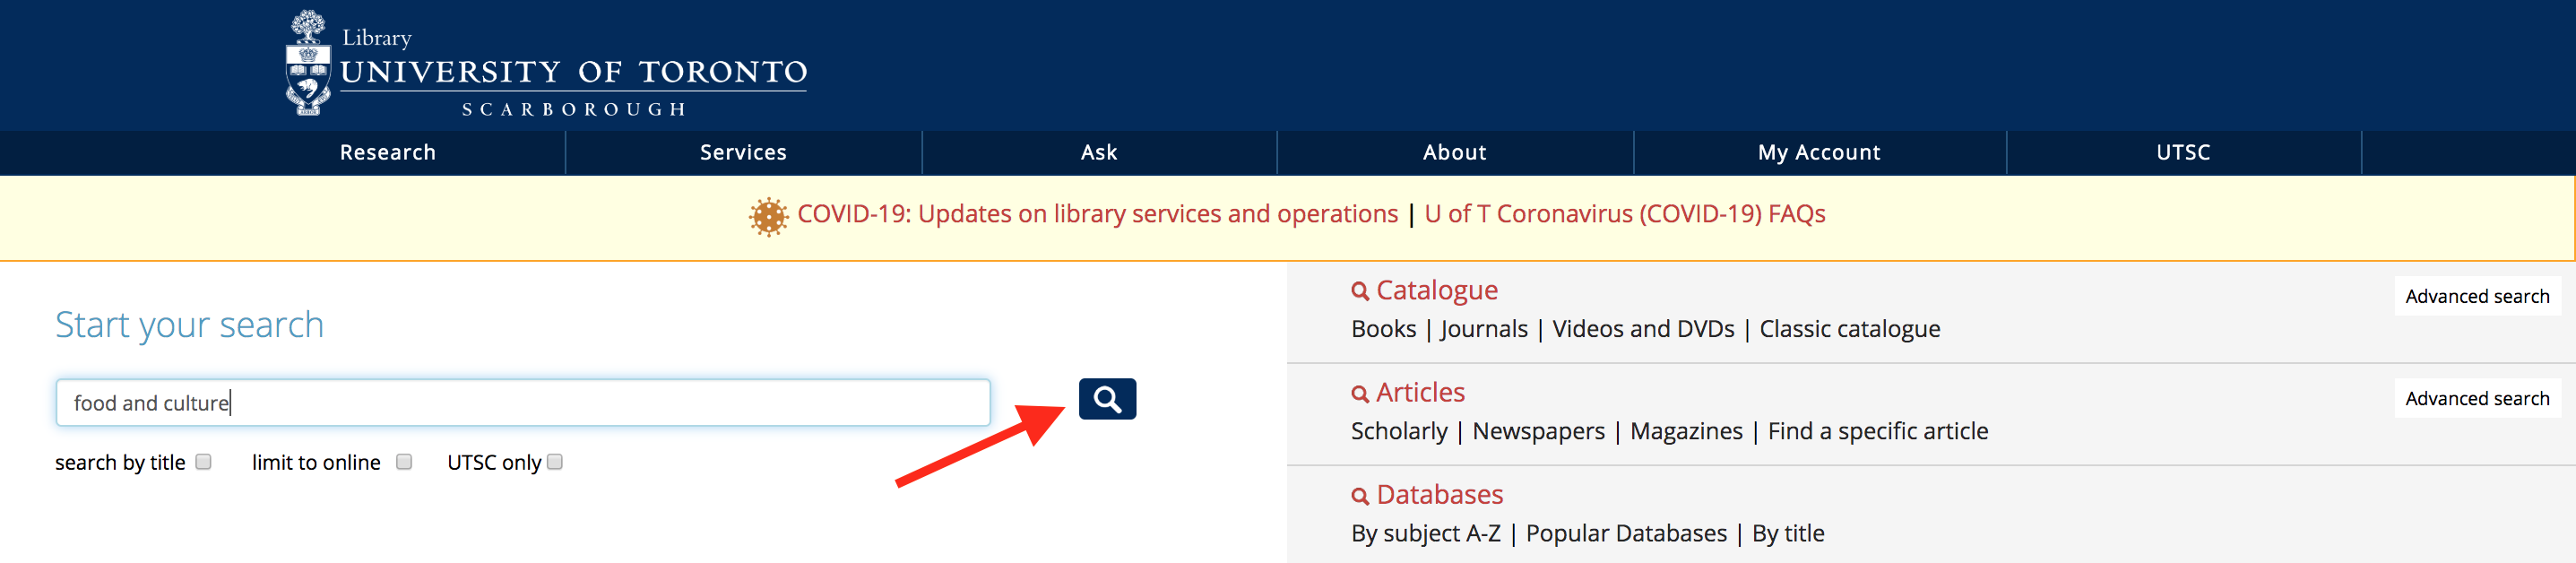 Screenshot of a search on the library homepage for food and culture.